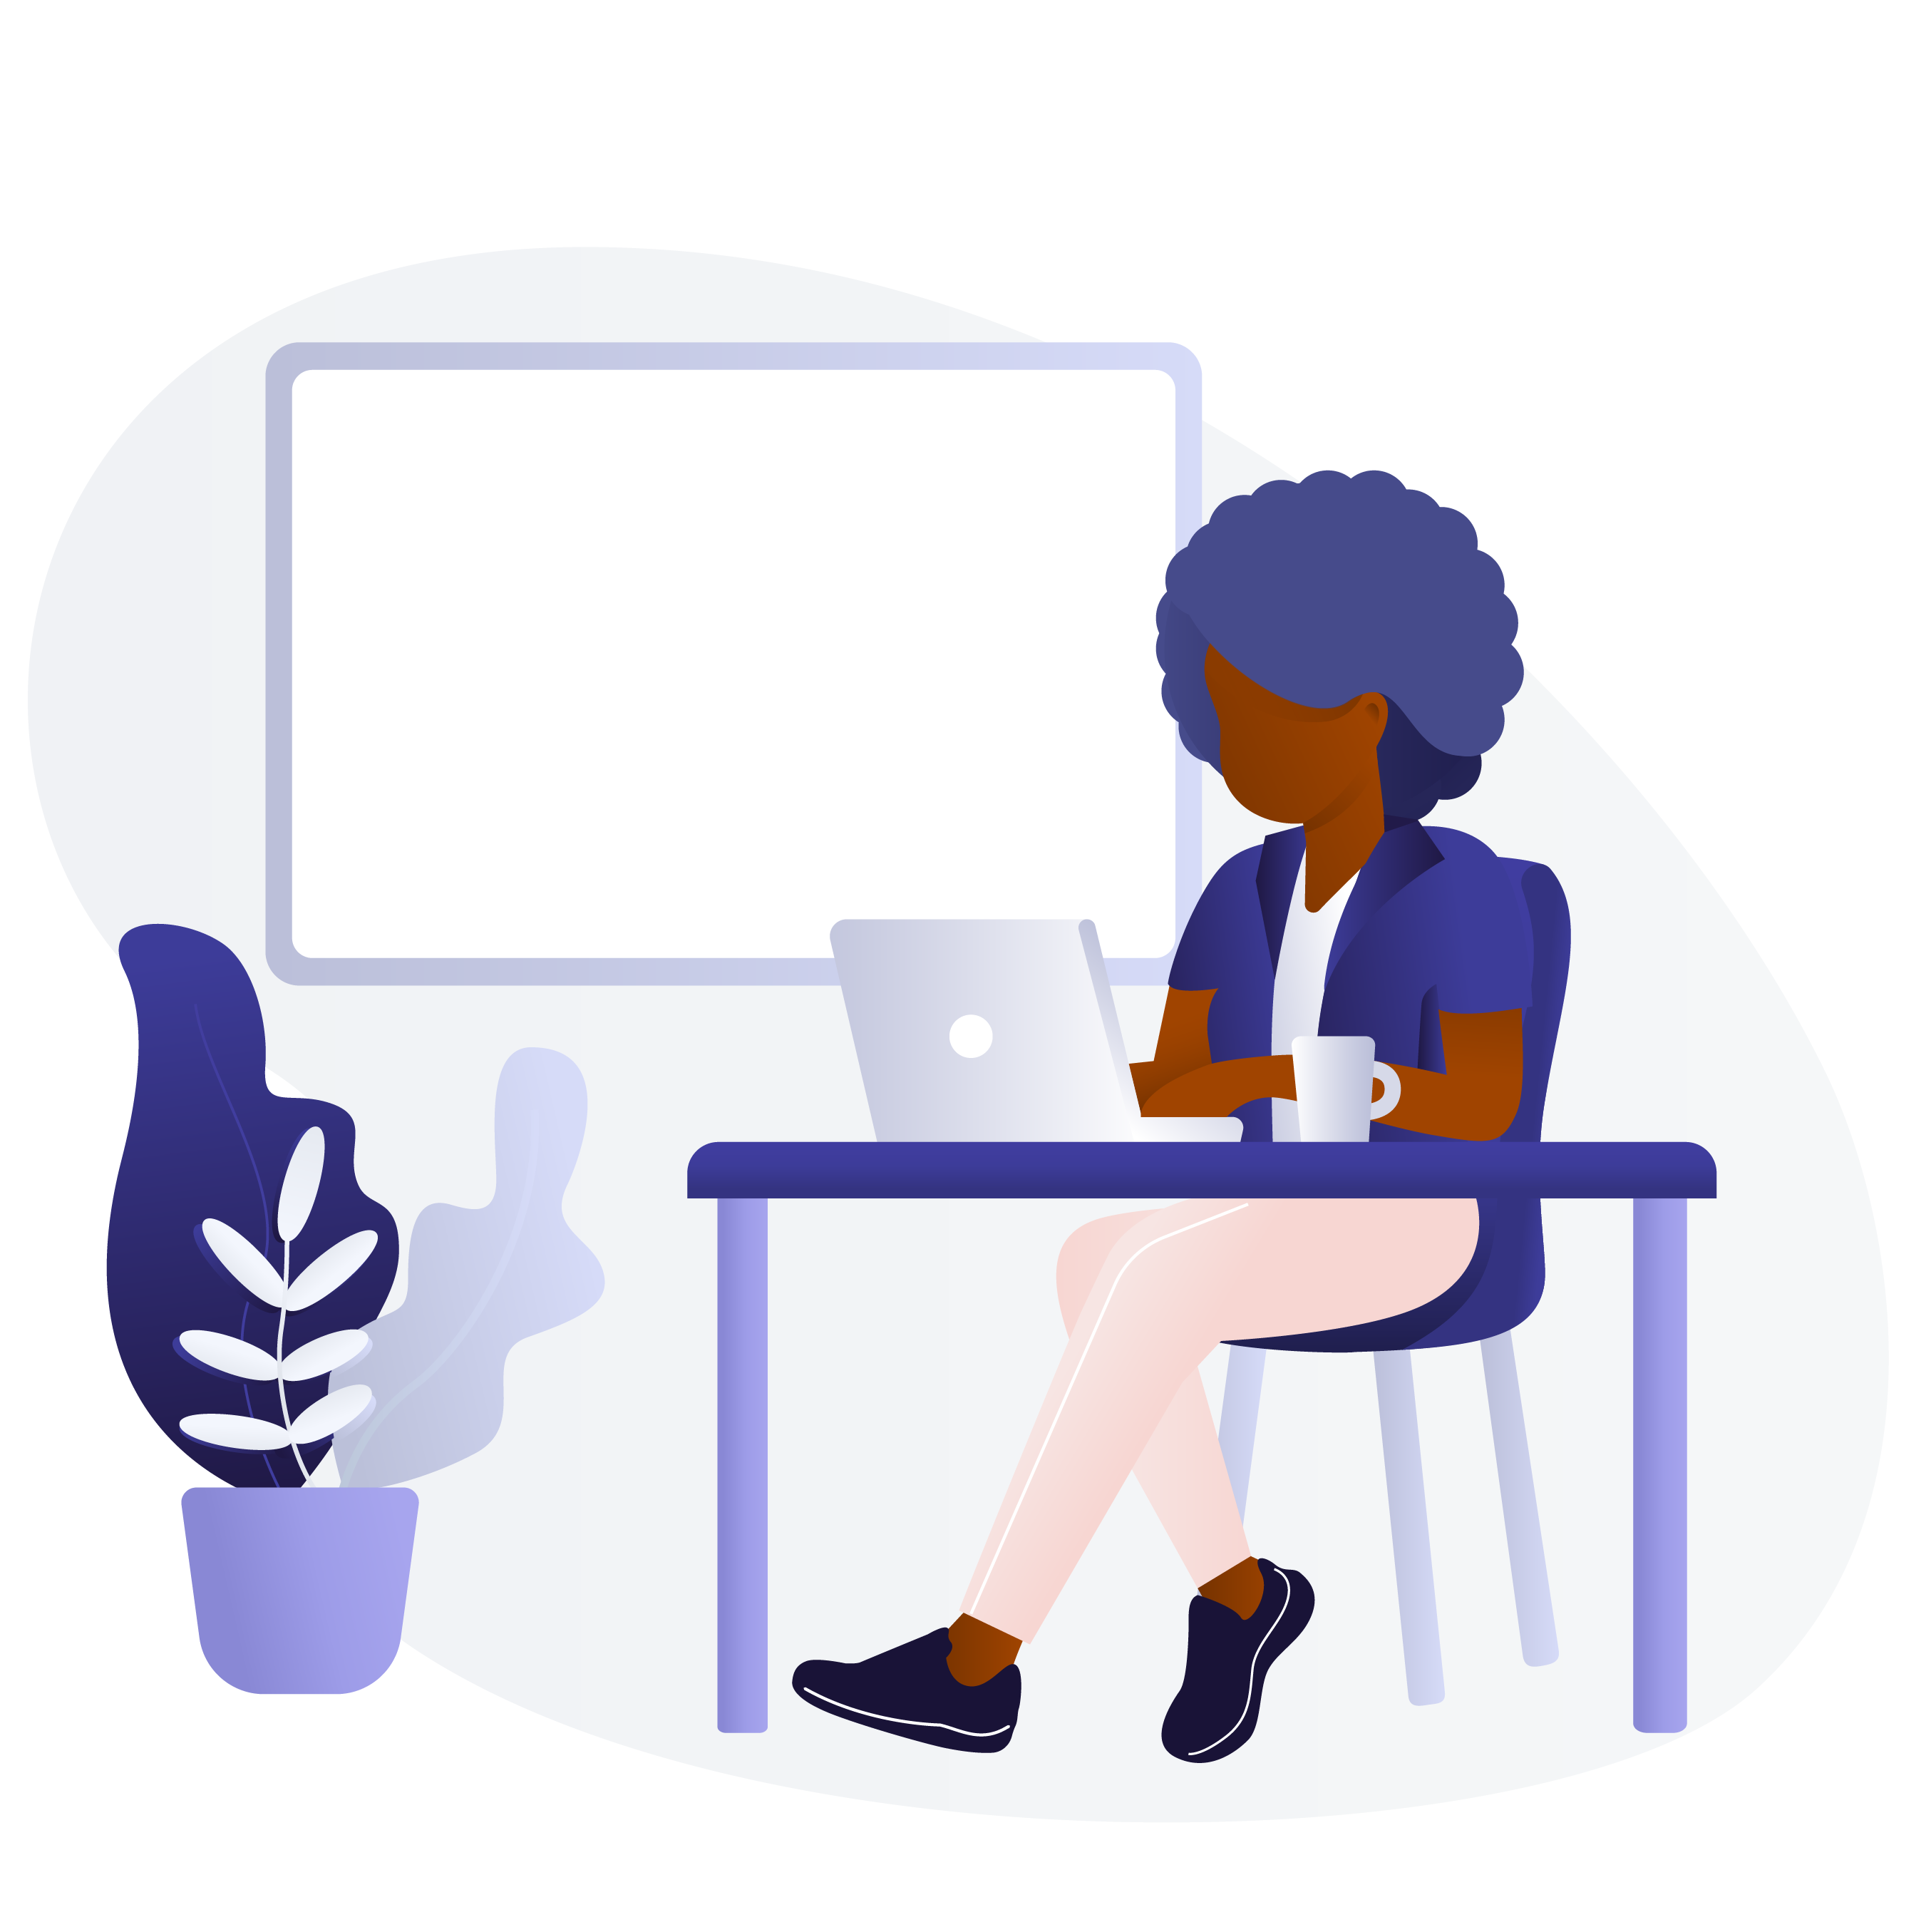 Black woman using laptop illustration